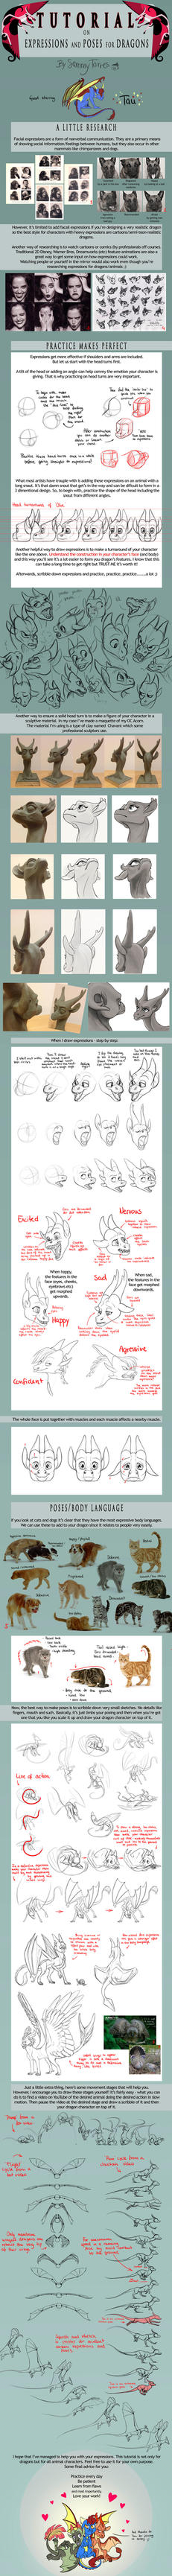 TUTORIAL: Expressions and Poses for Dragons by SammyTorres